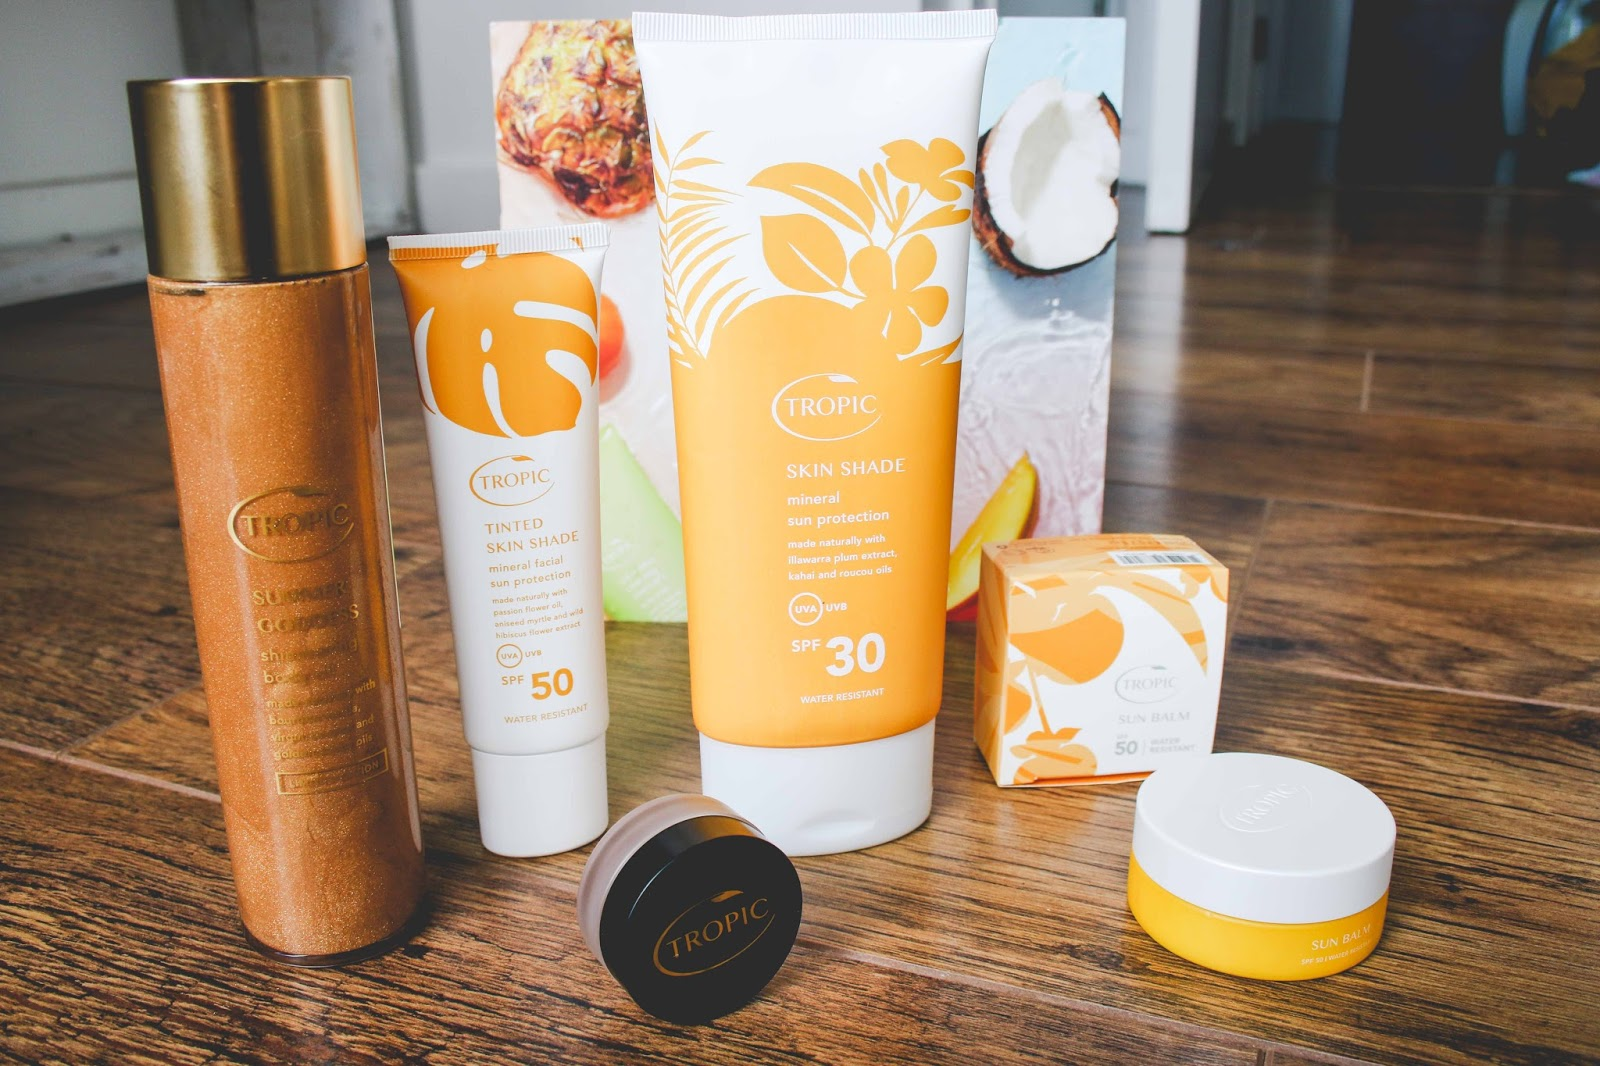 Tropic skincare sunscreen range